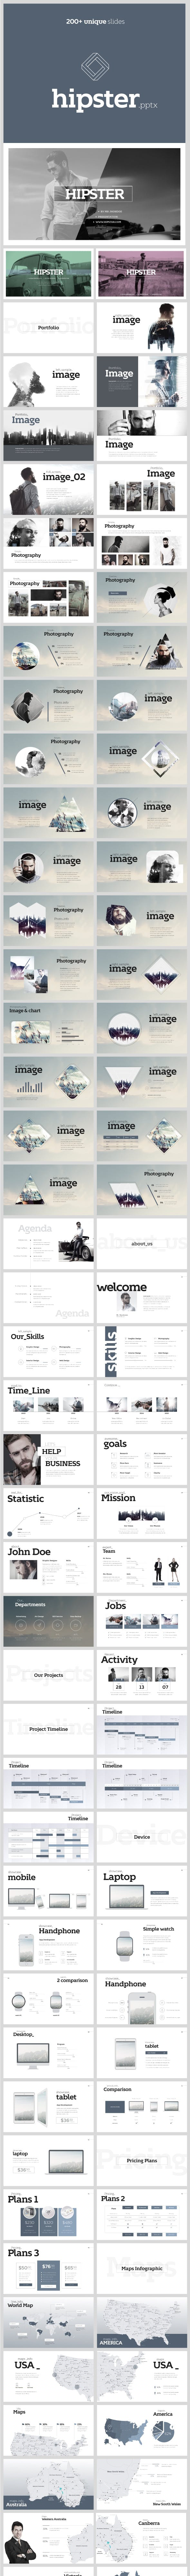 hipster powerpoint template v 22 by shafura graphicriver